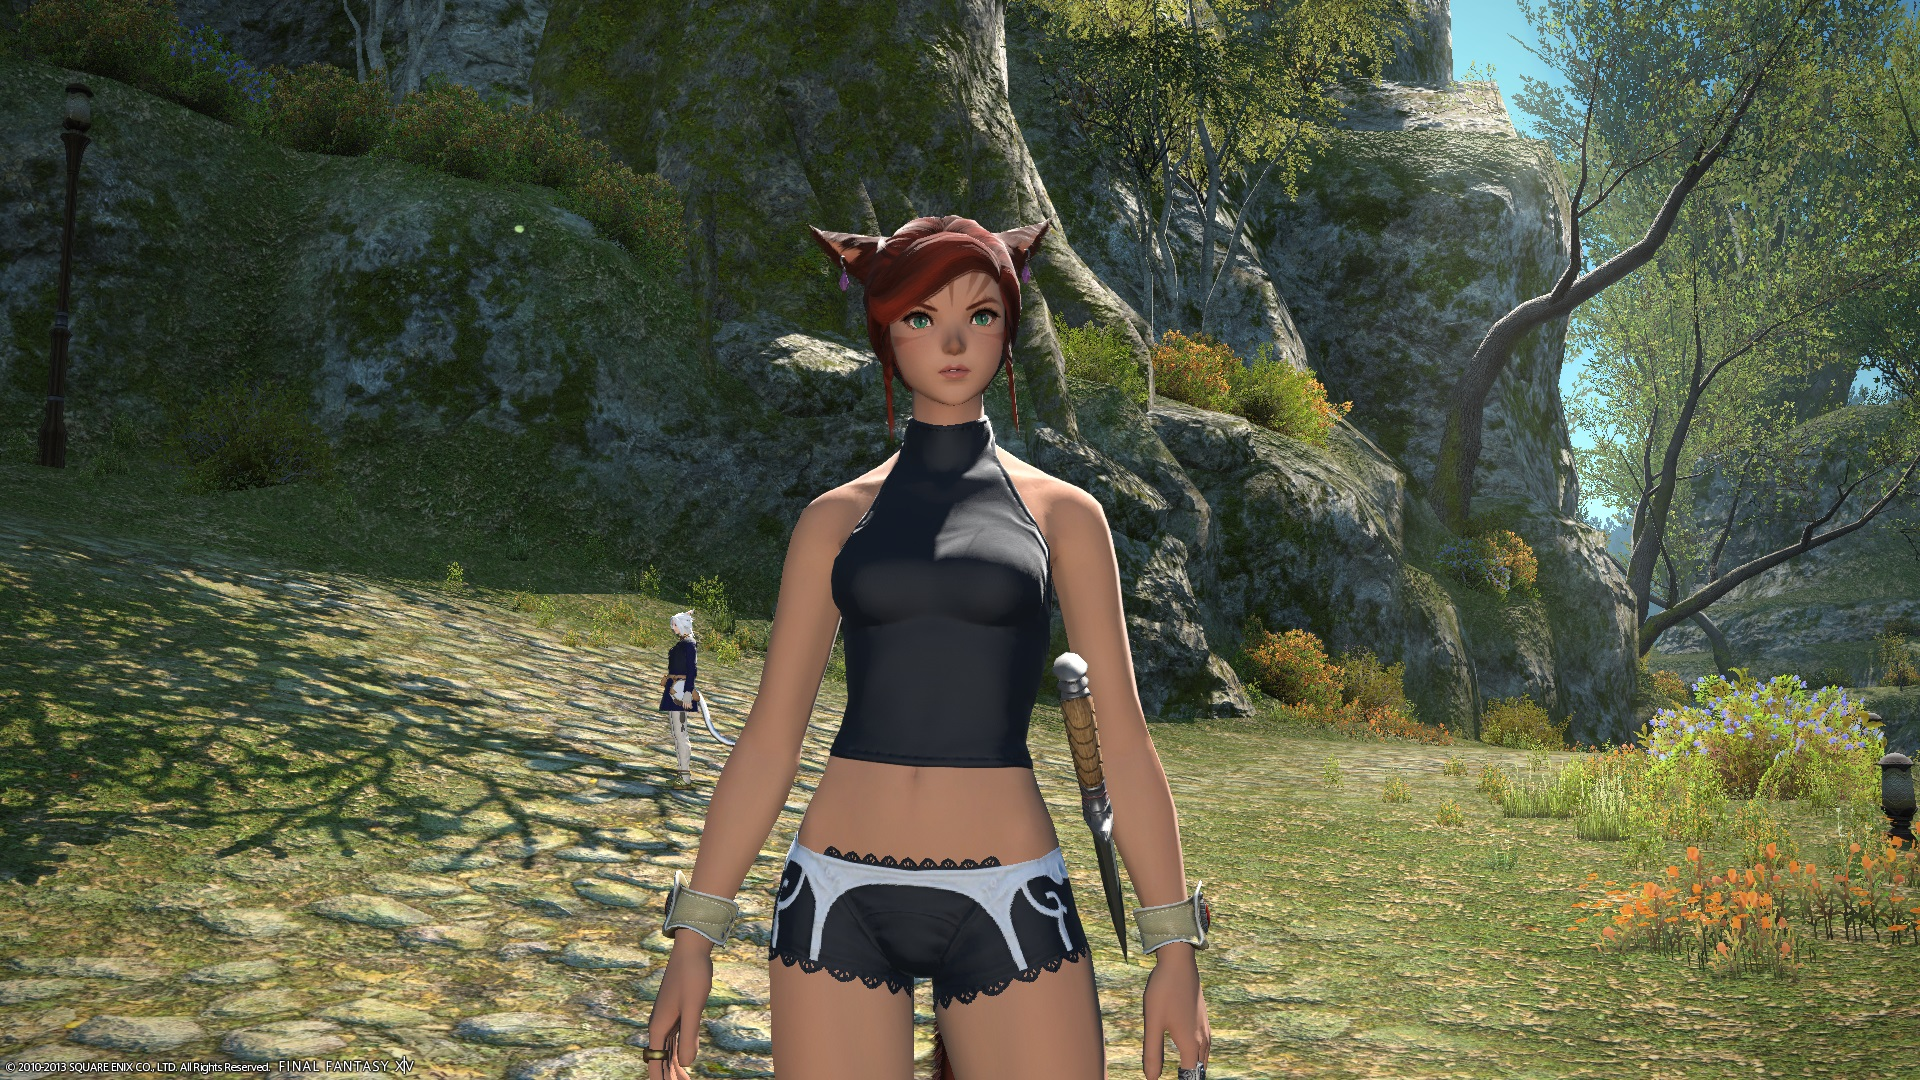 niwaar ffxiv cute fantastic awesome picture this comment cheesecake phase contest wanted just